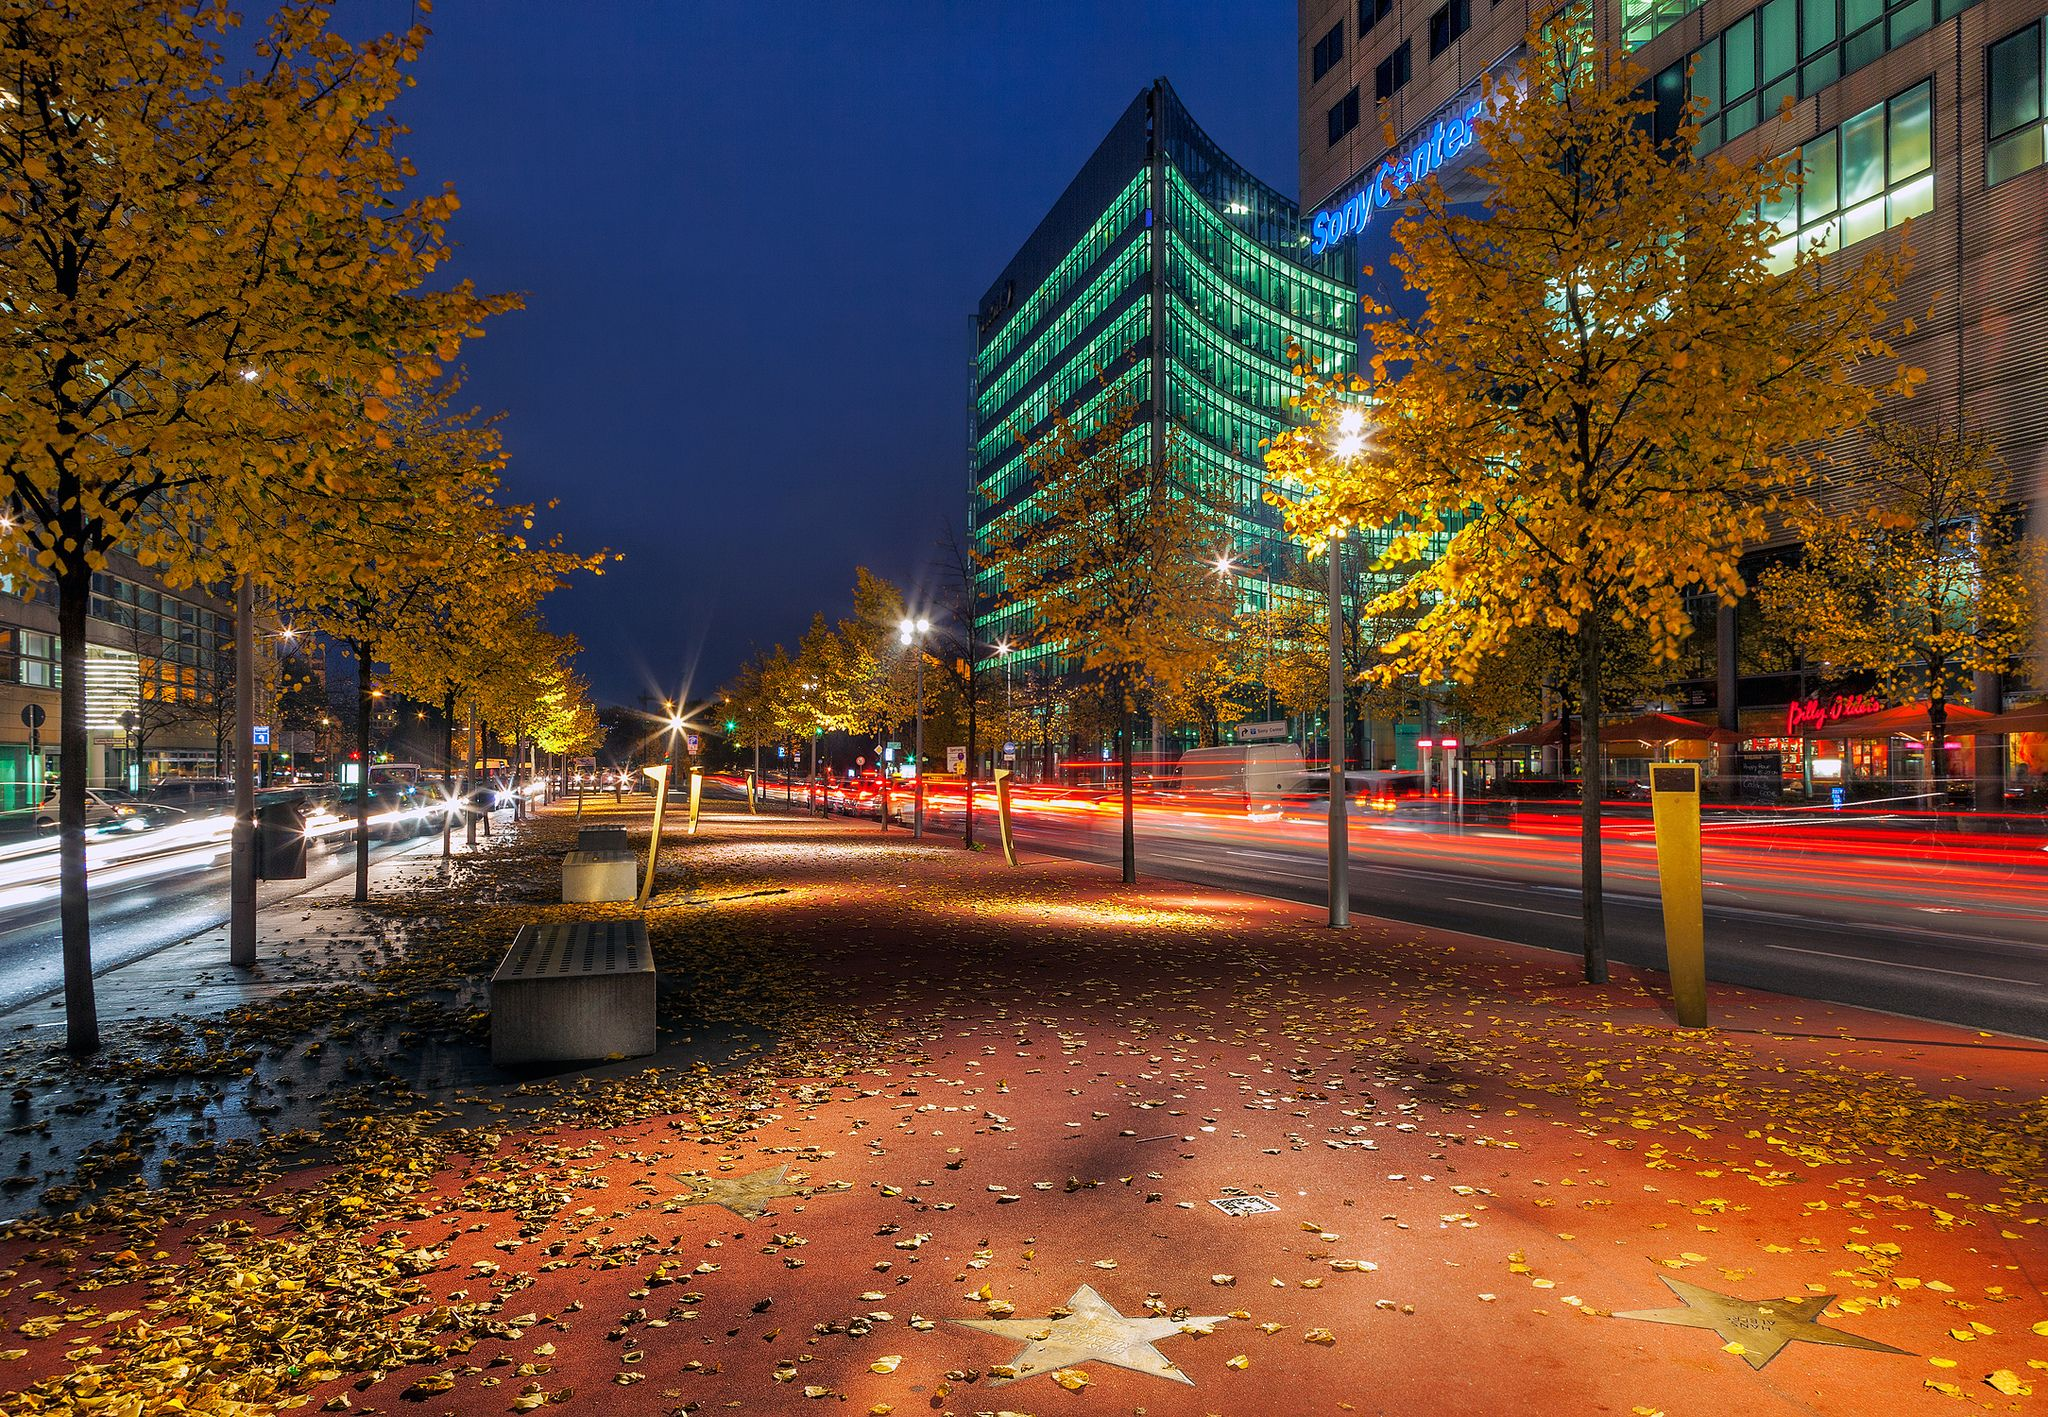 boulevard der stars, potsdamer platz, berlin, Boulevard stars, Berlin, deutschland - HD wallpaper desktop backgrounds